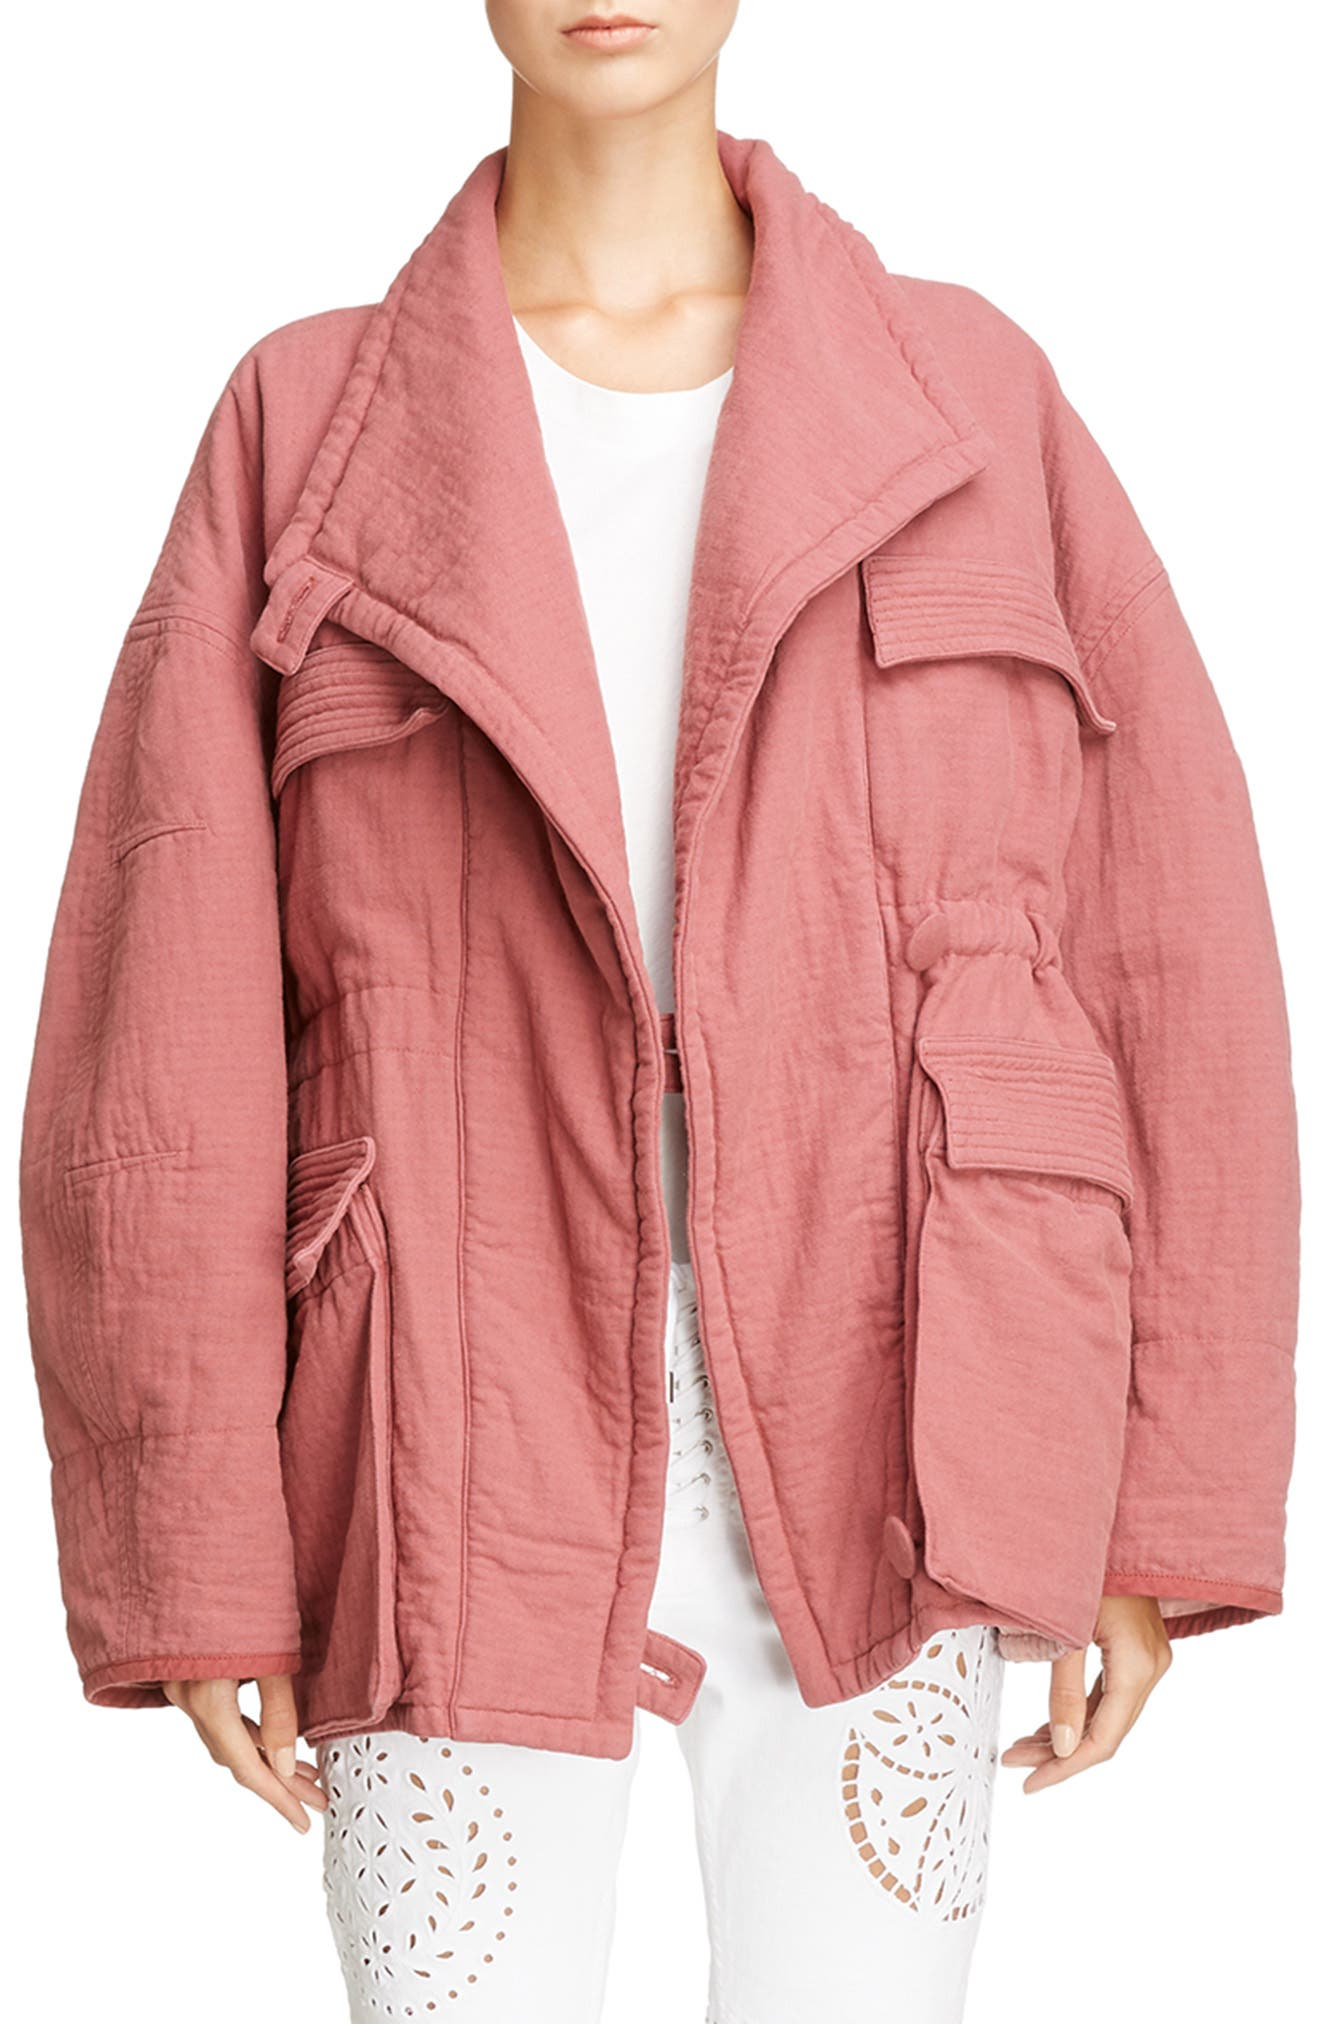 Oversize Textured Cotton Jacket,                         Main,                         color, 600